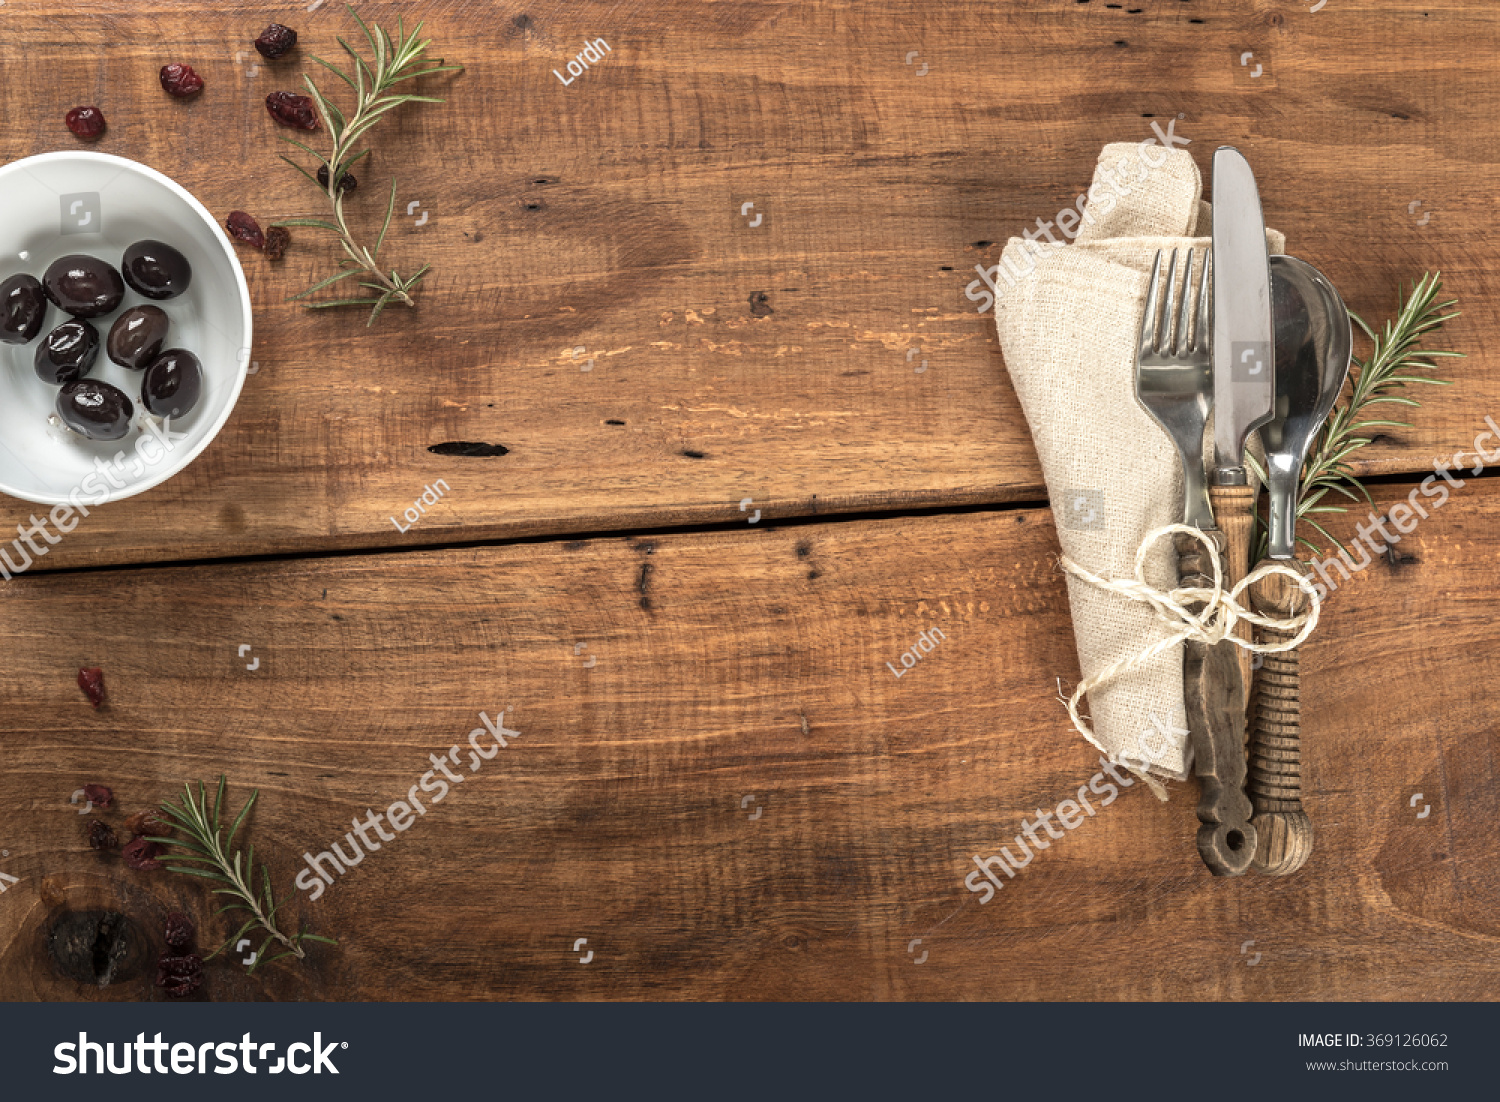 Rustic Old Wooden Mediterranean Table Setup With Copy Space